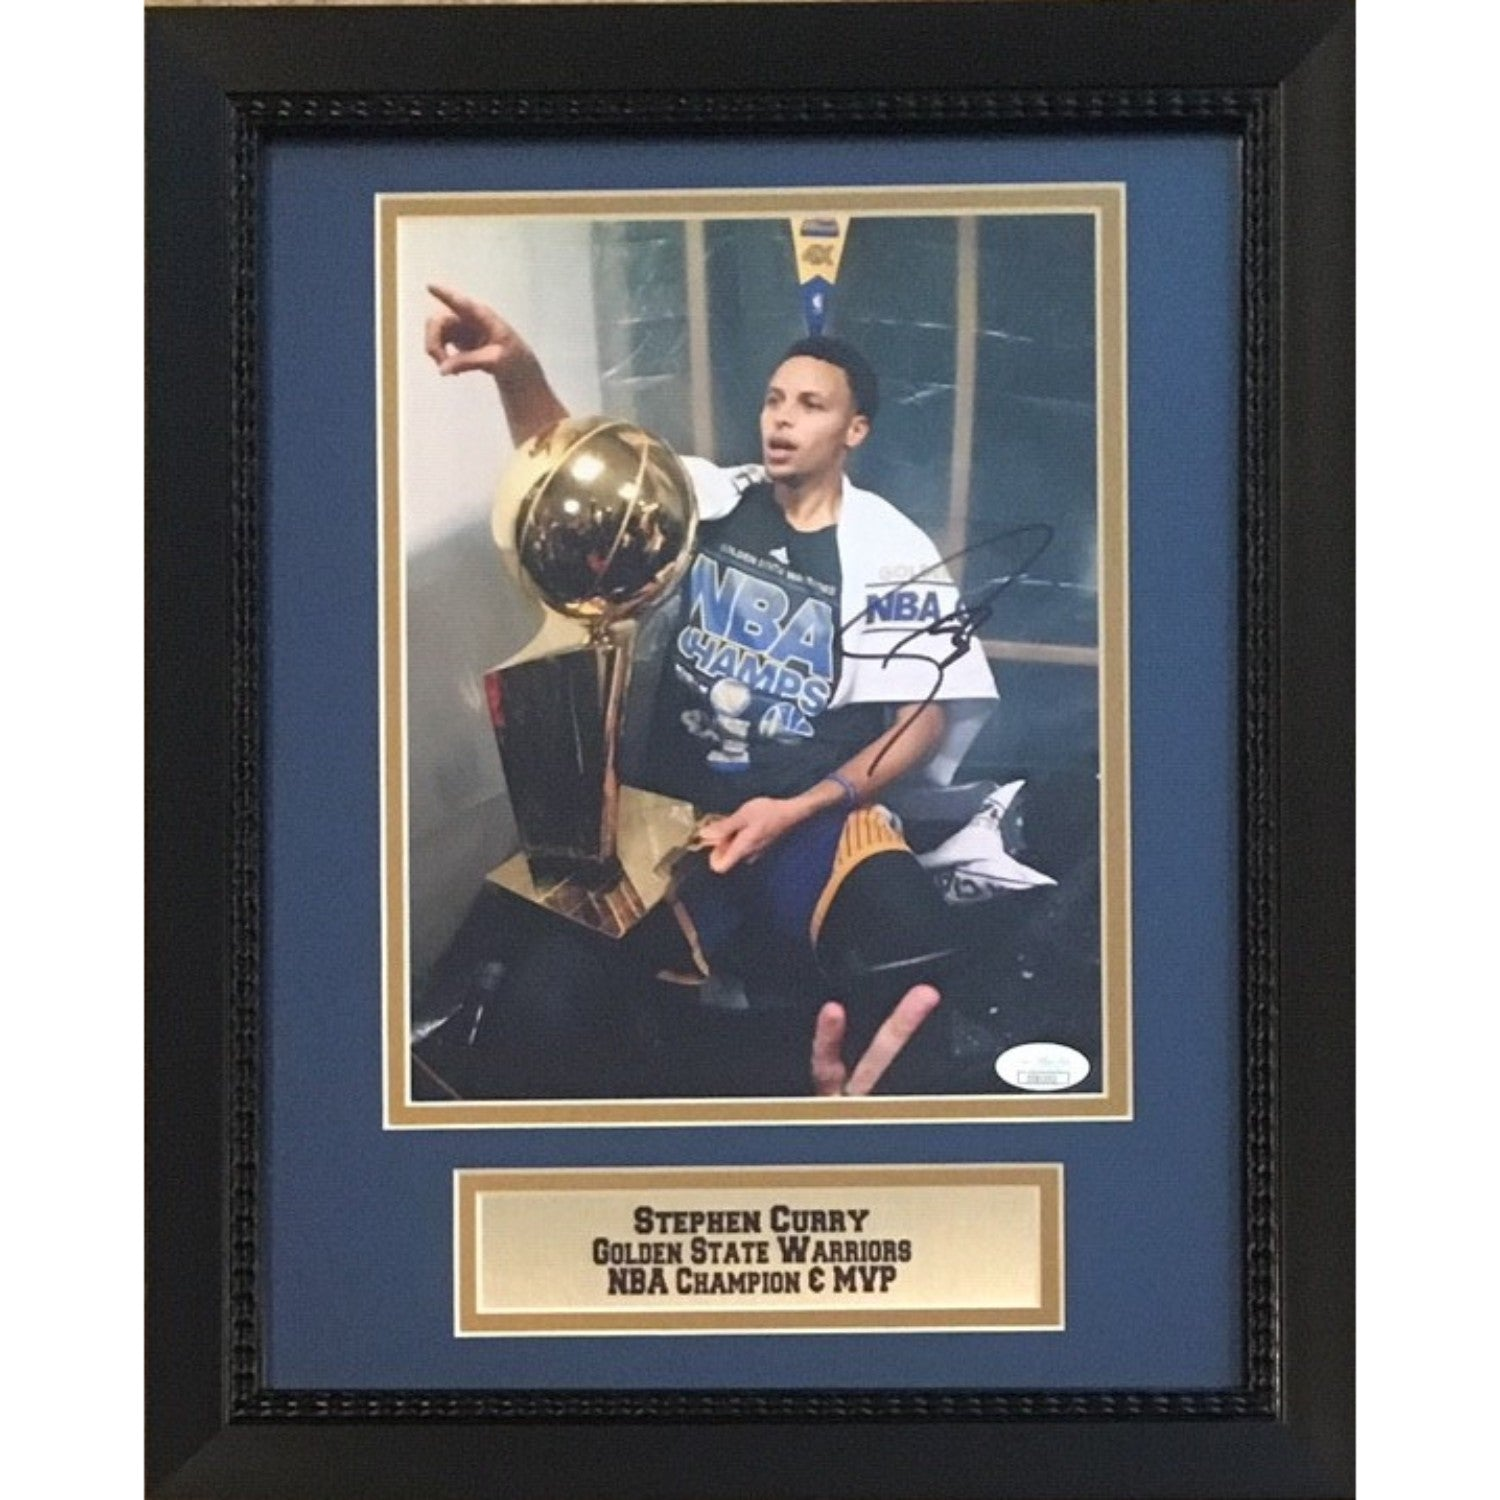 Stephen Curry Autographed Golden State Warriors Signed NBA Champion MVP 8x10 Framed Basketball Photo JSA COA 5-Powers Sports Memorabilia